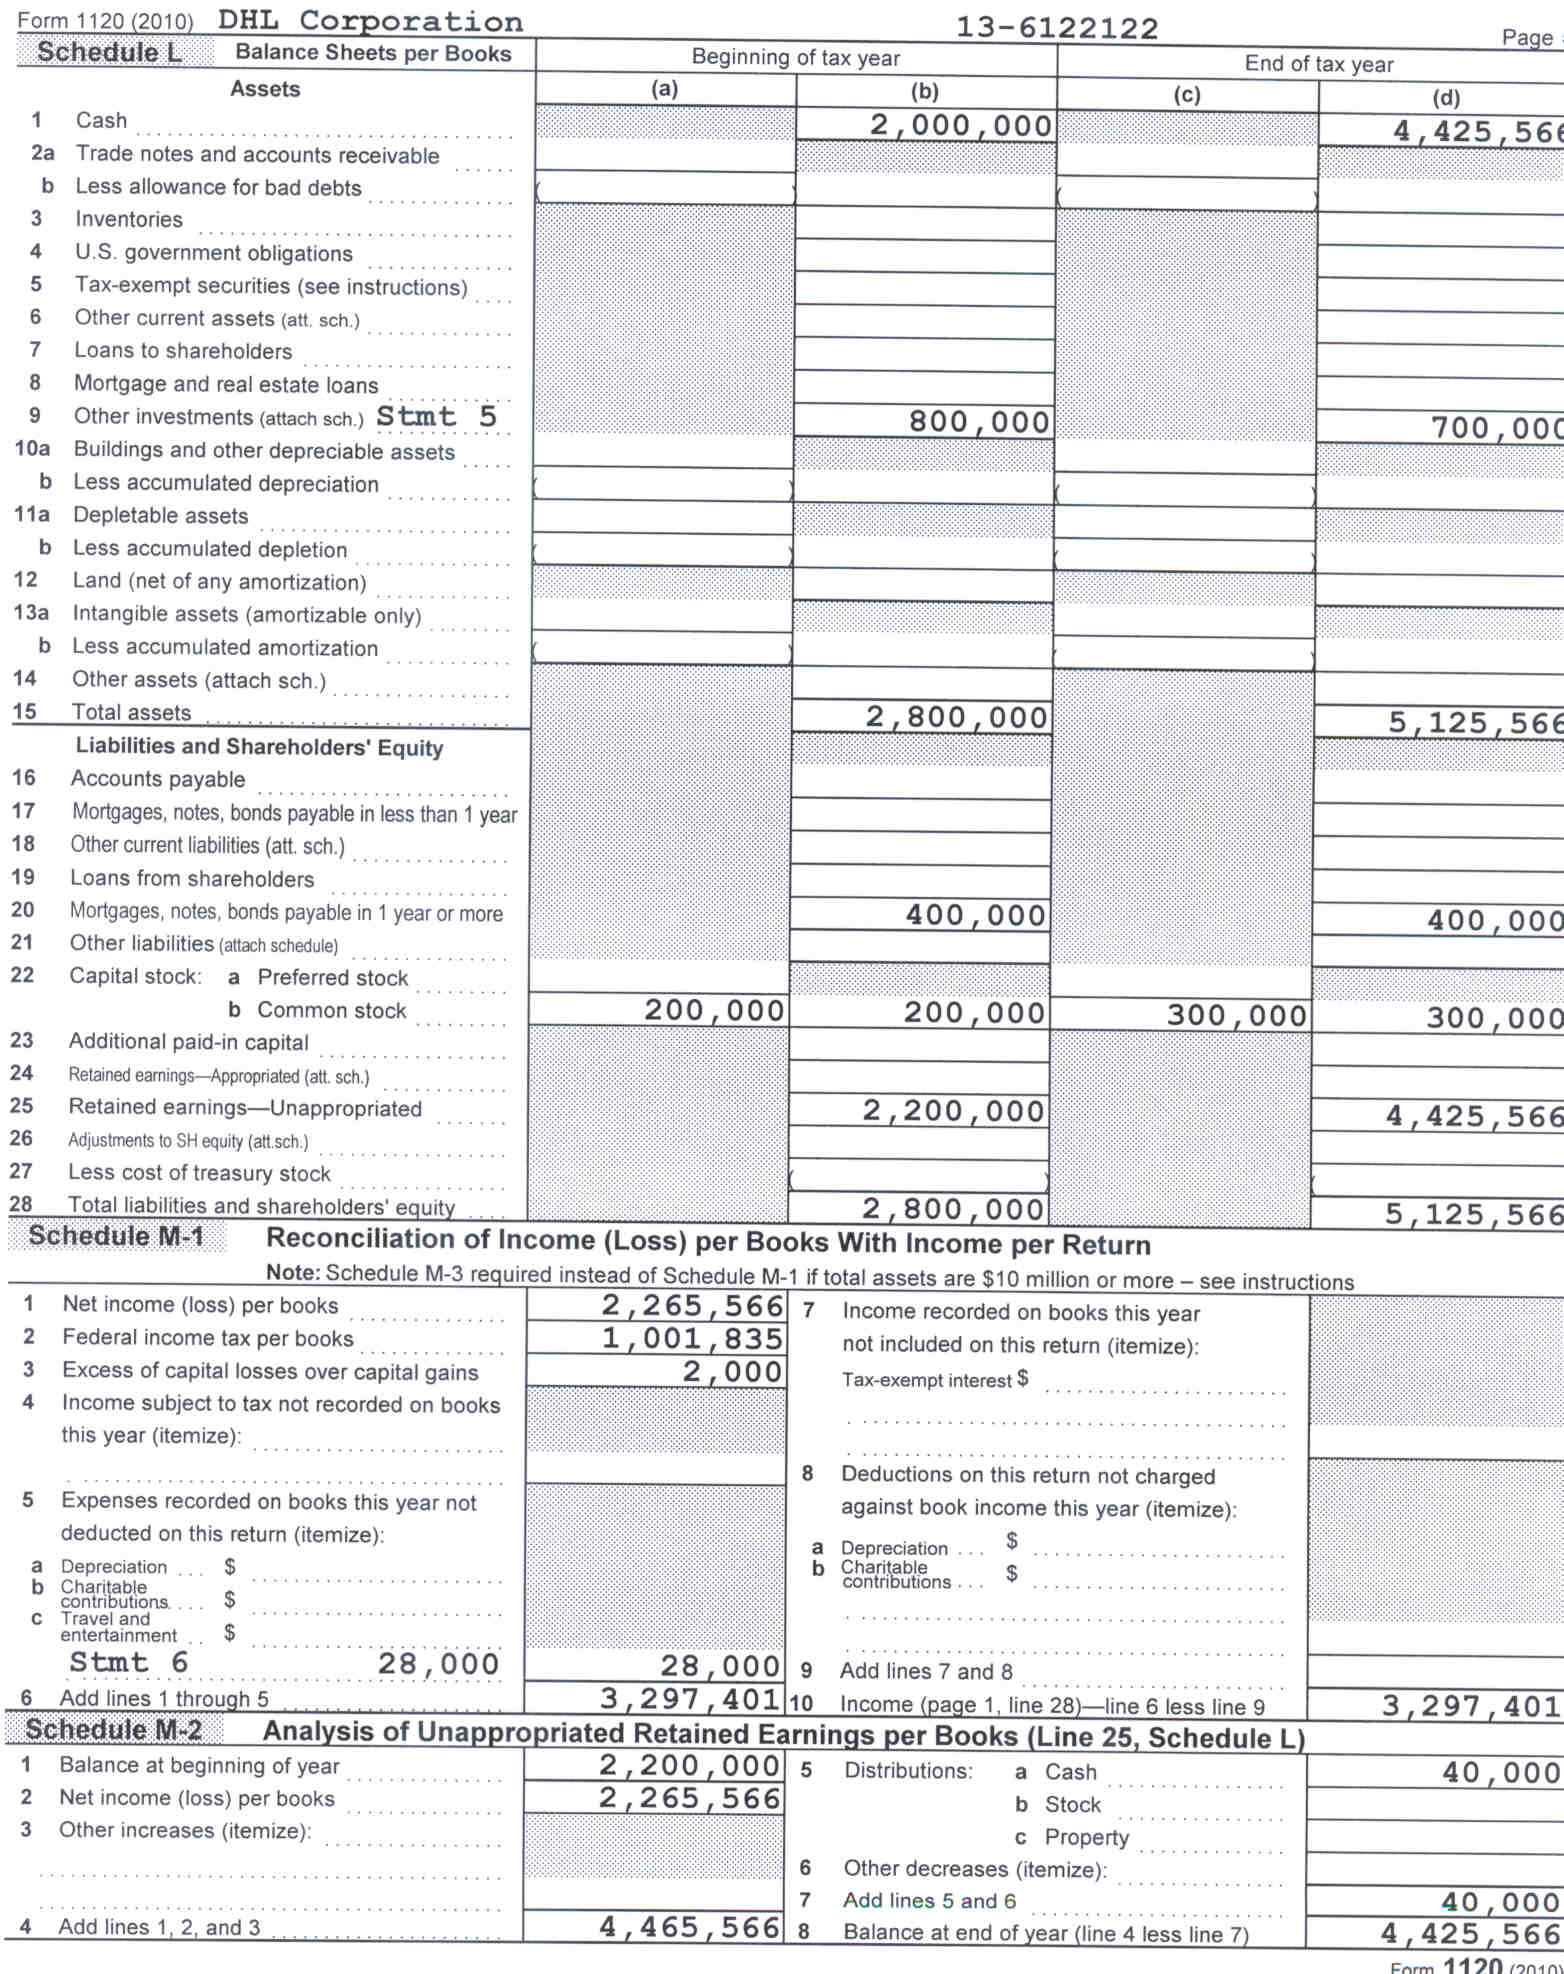 Can you review this tax return form 1120 given sample case